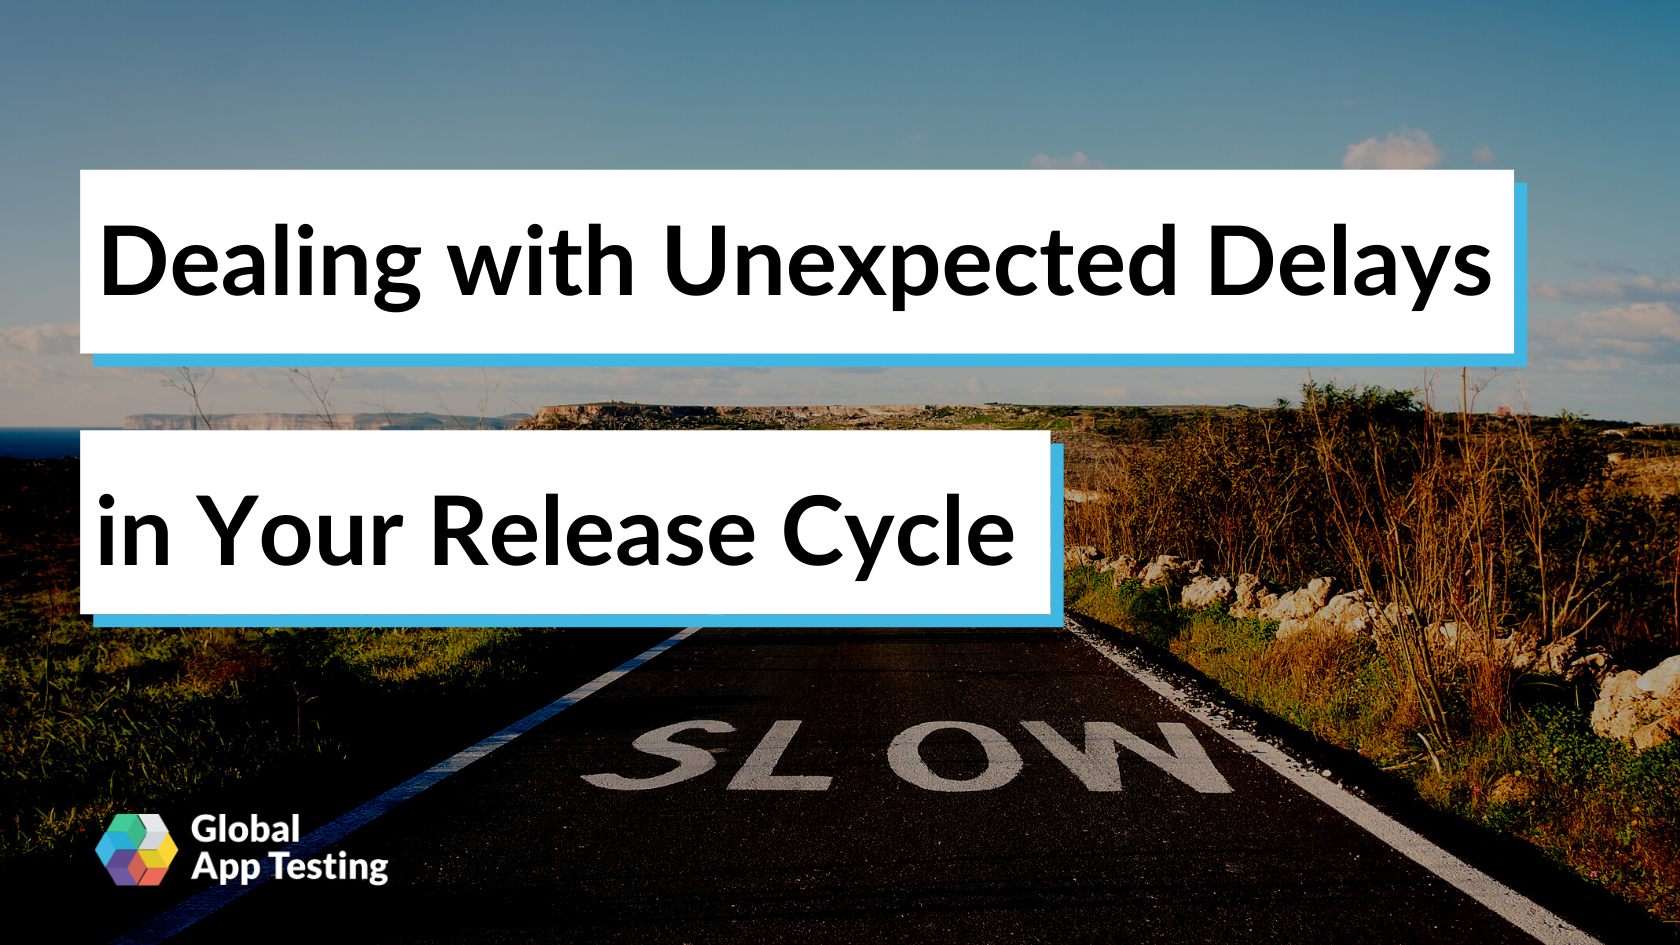 Dealing with Unexpected Delays